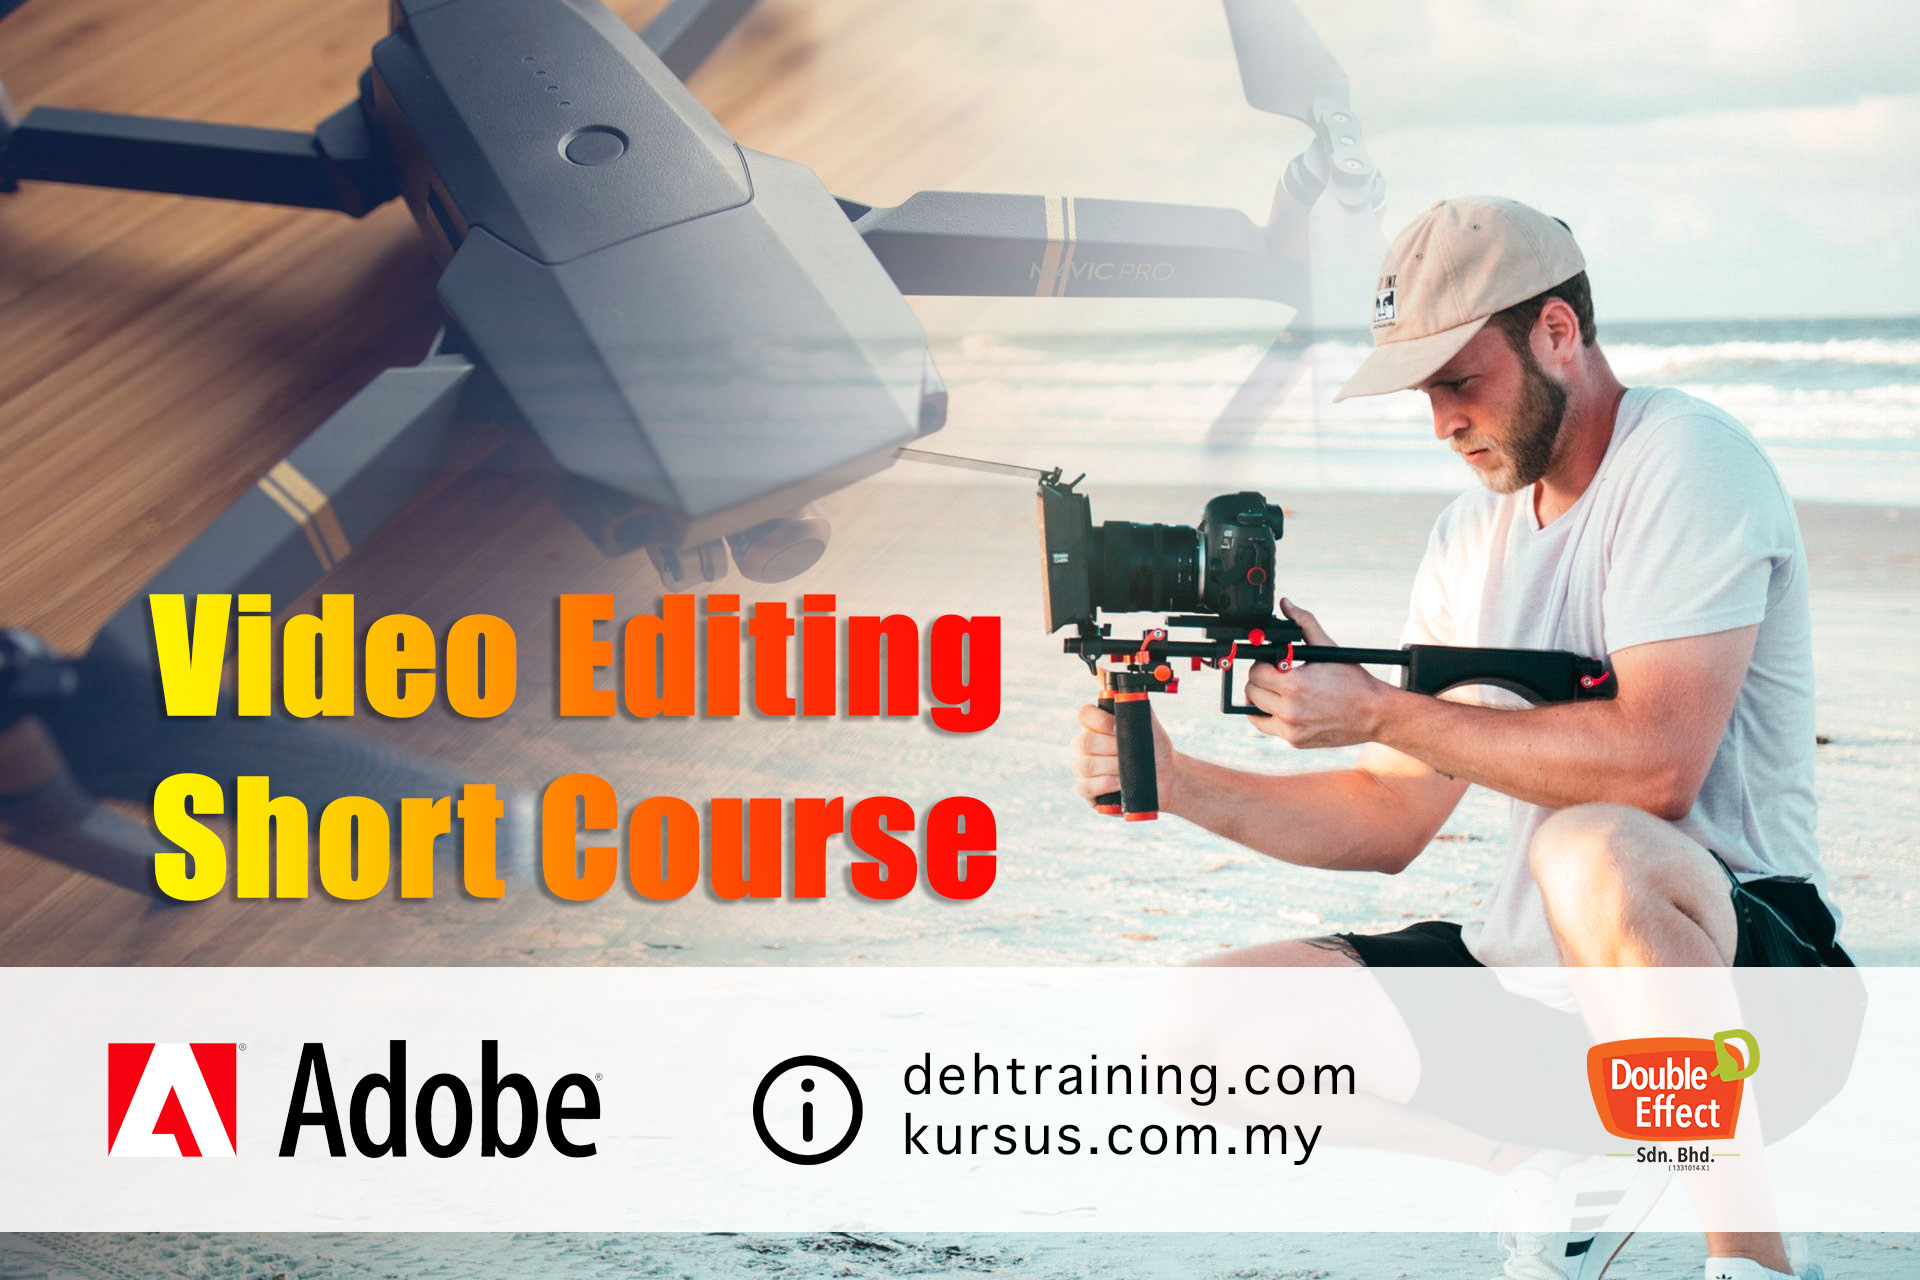 Video Editing Short Course